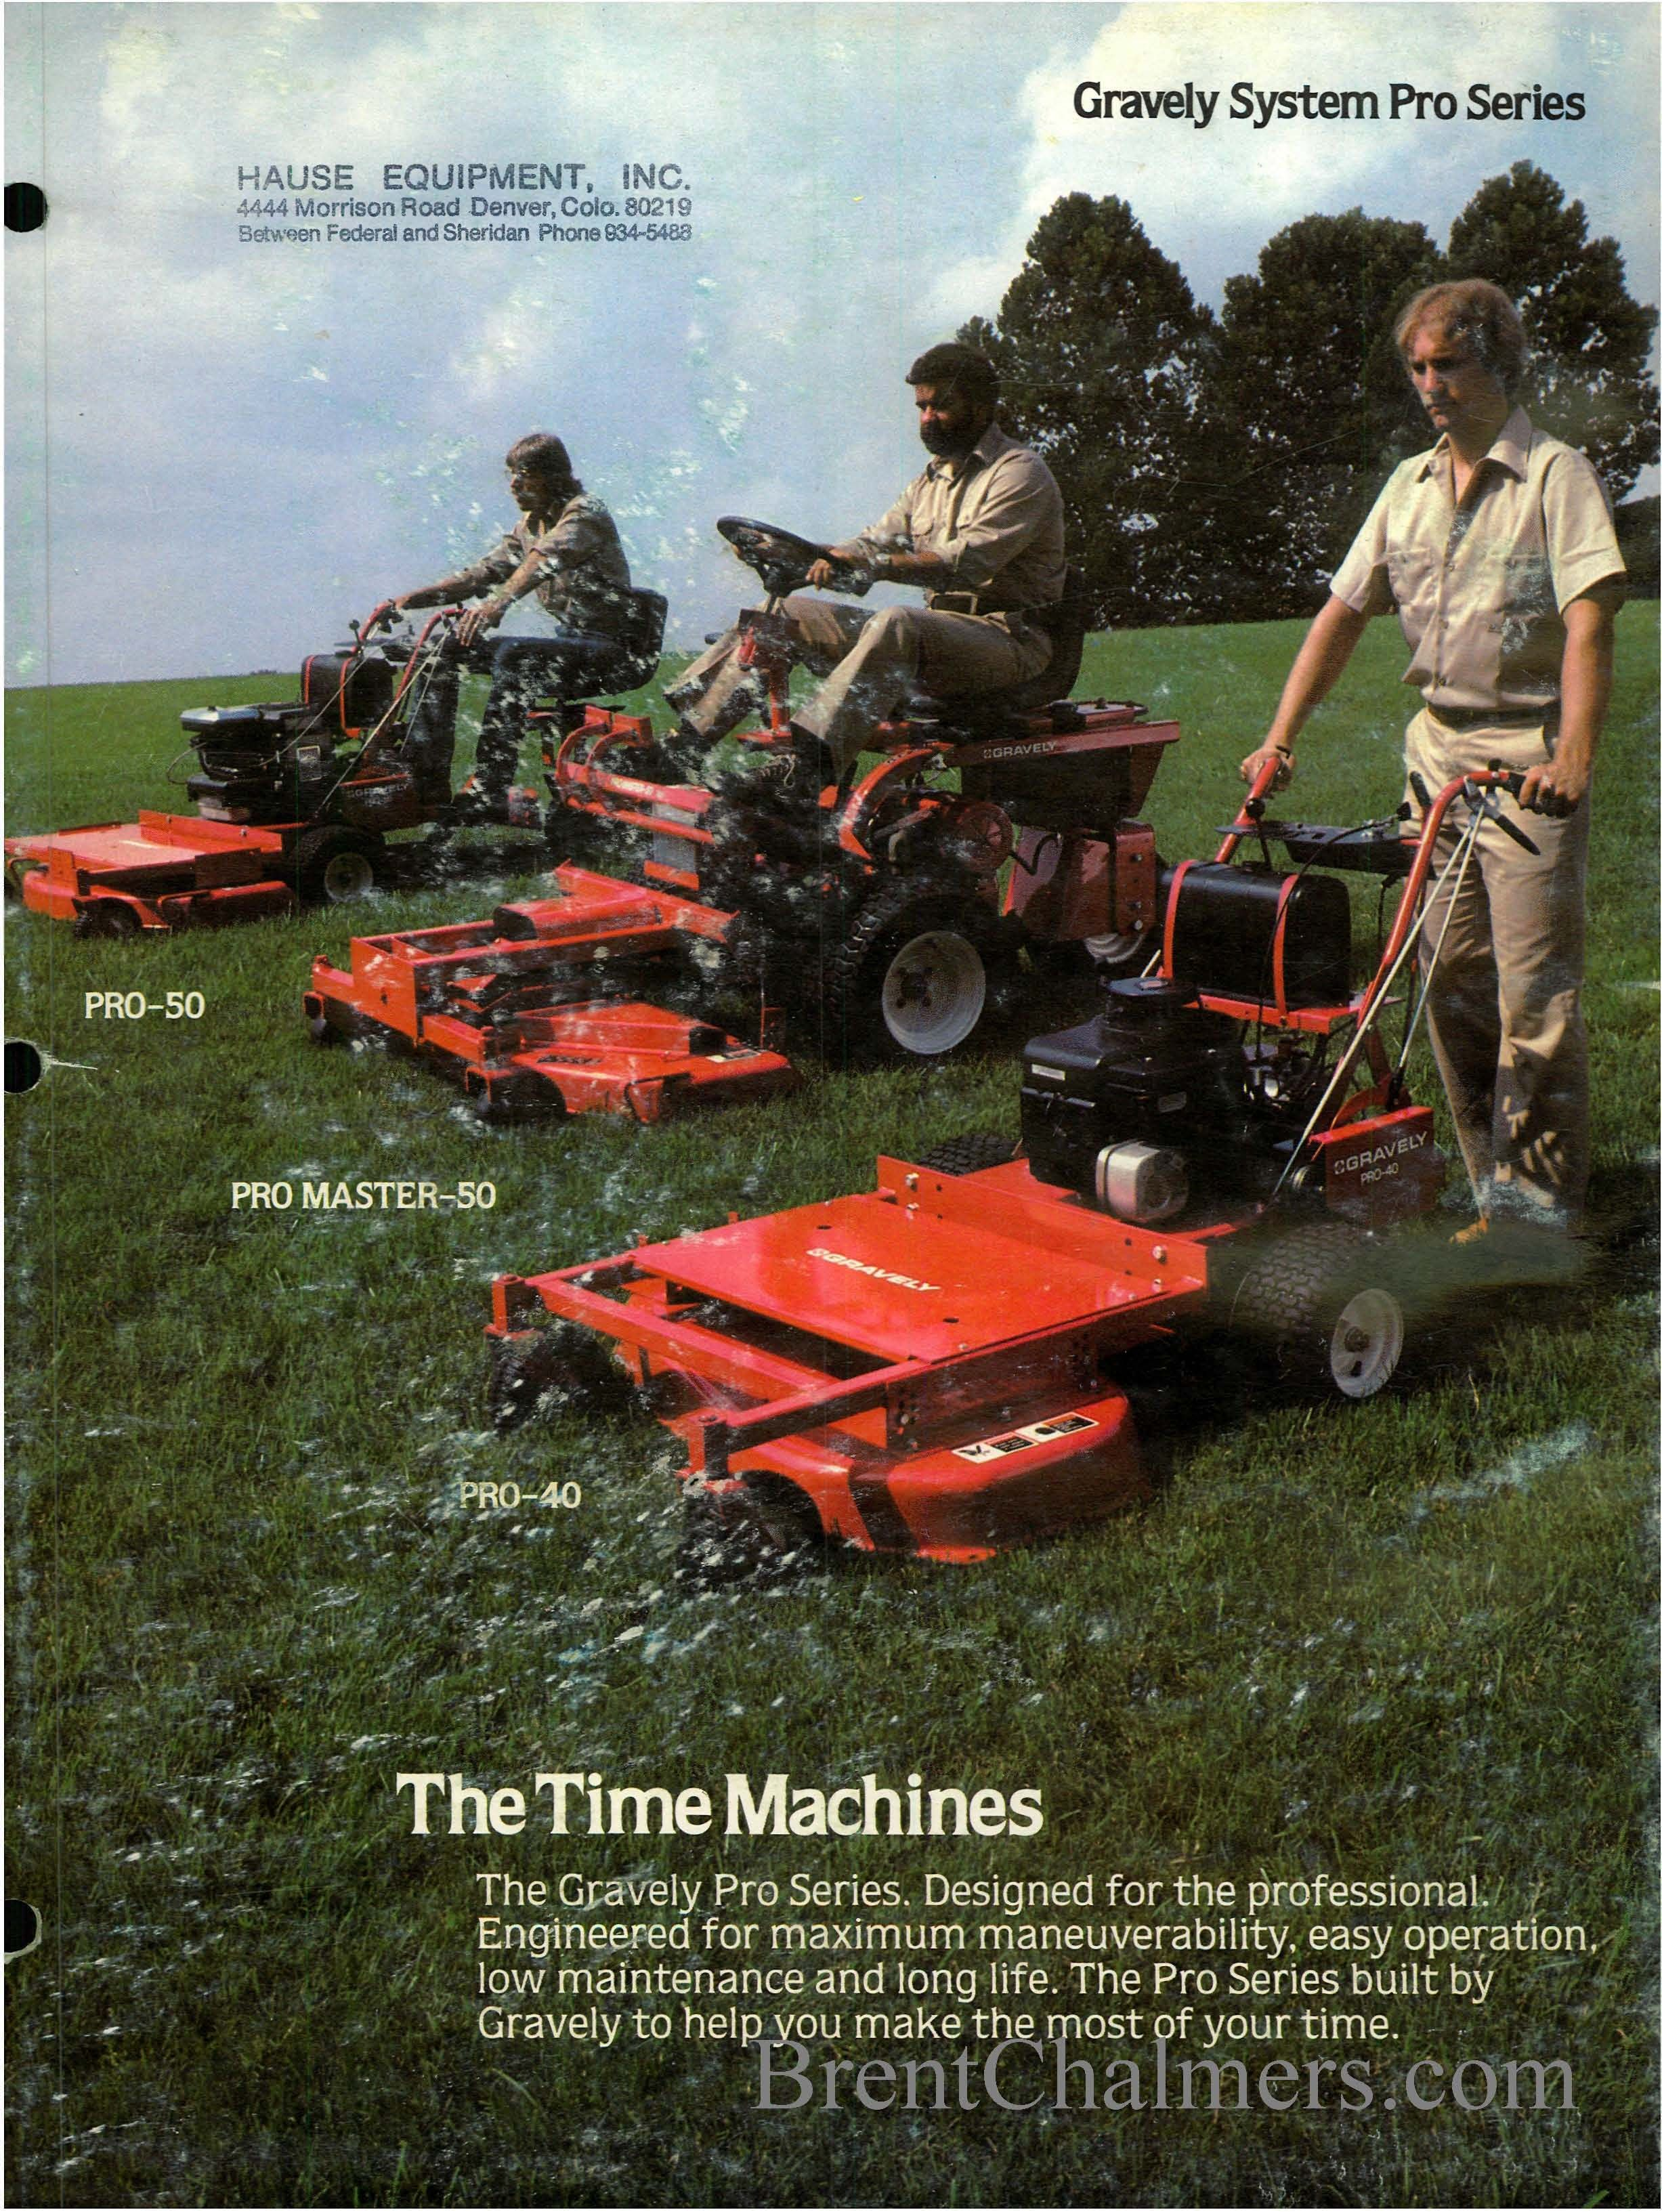 1982 Gravely System Pro Series Sales Brochure (6 Pages)